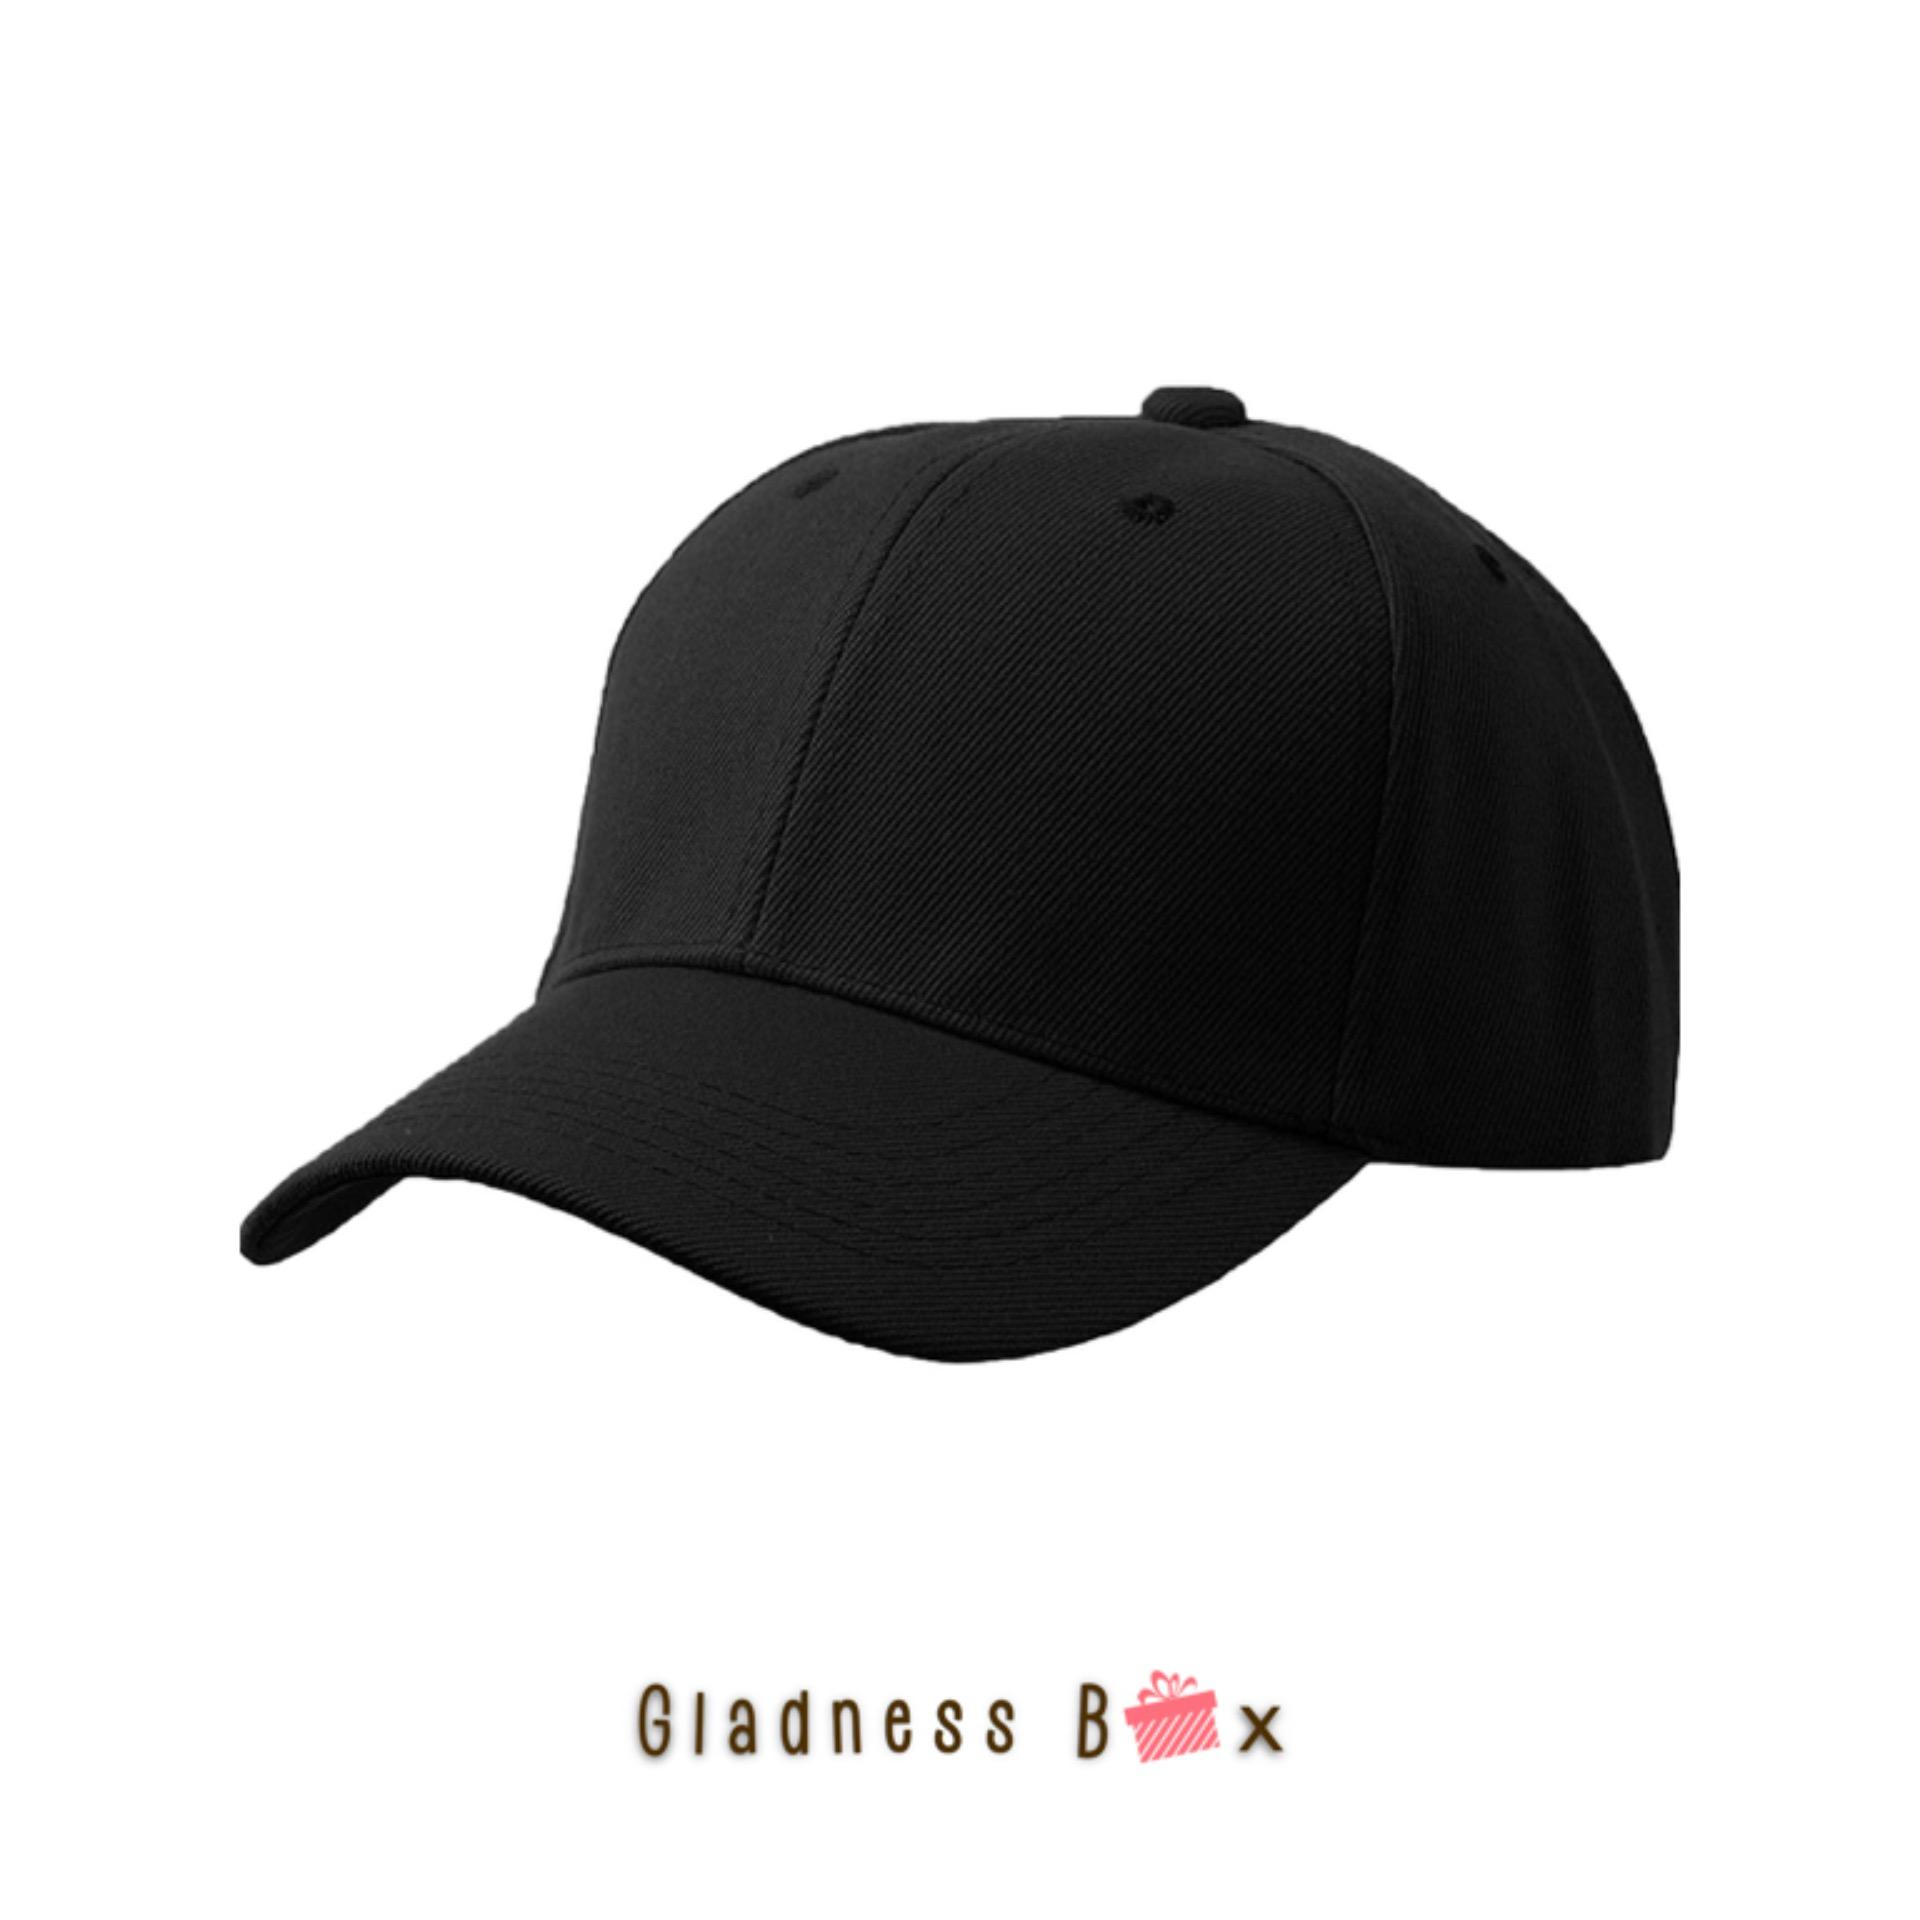 b45587f5865 Gladness Box High Quality Plain Baseball Cap for Men Women Unisex